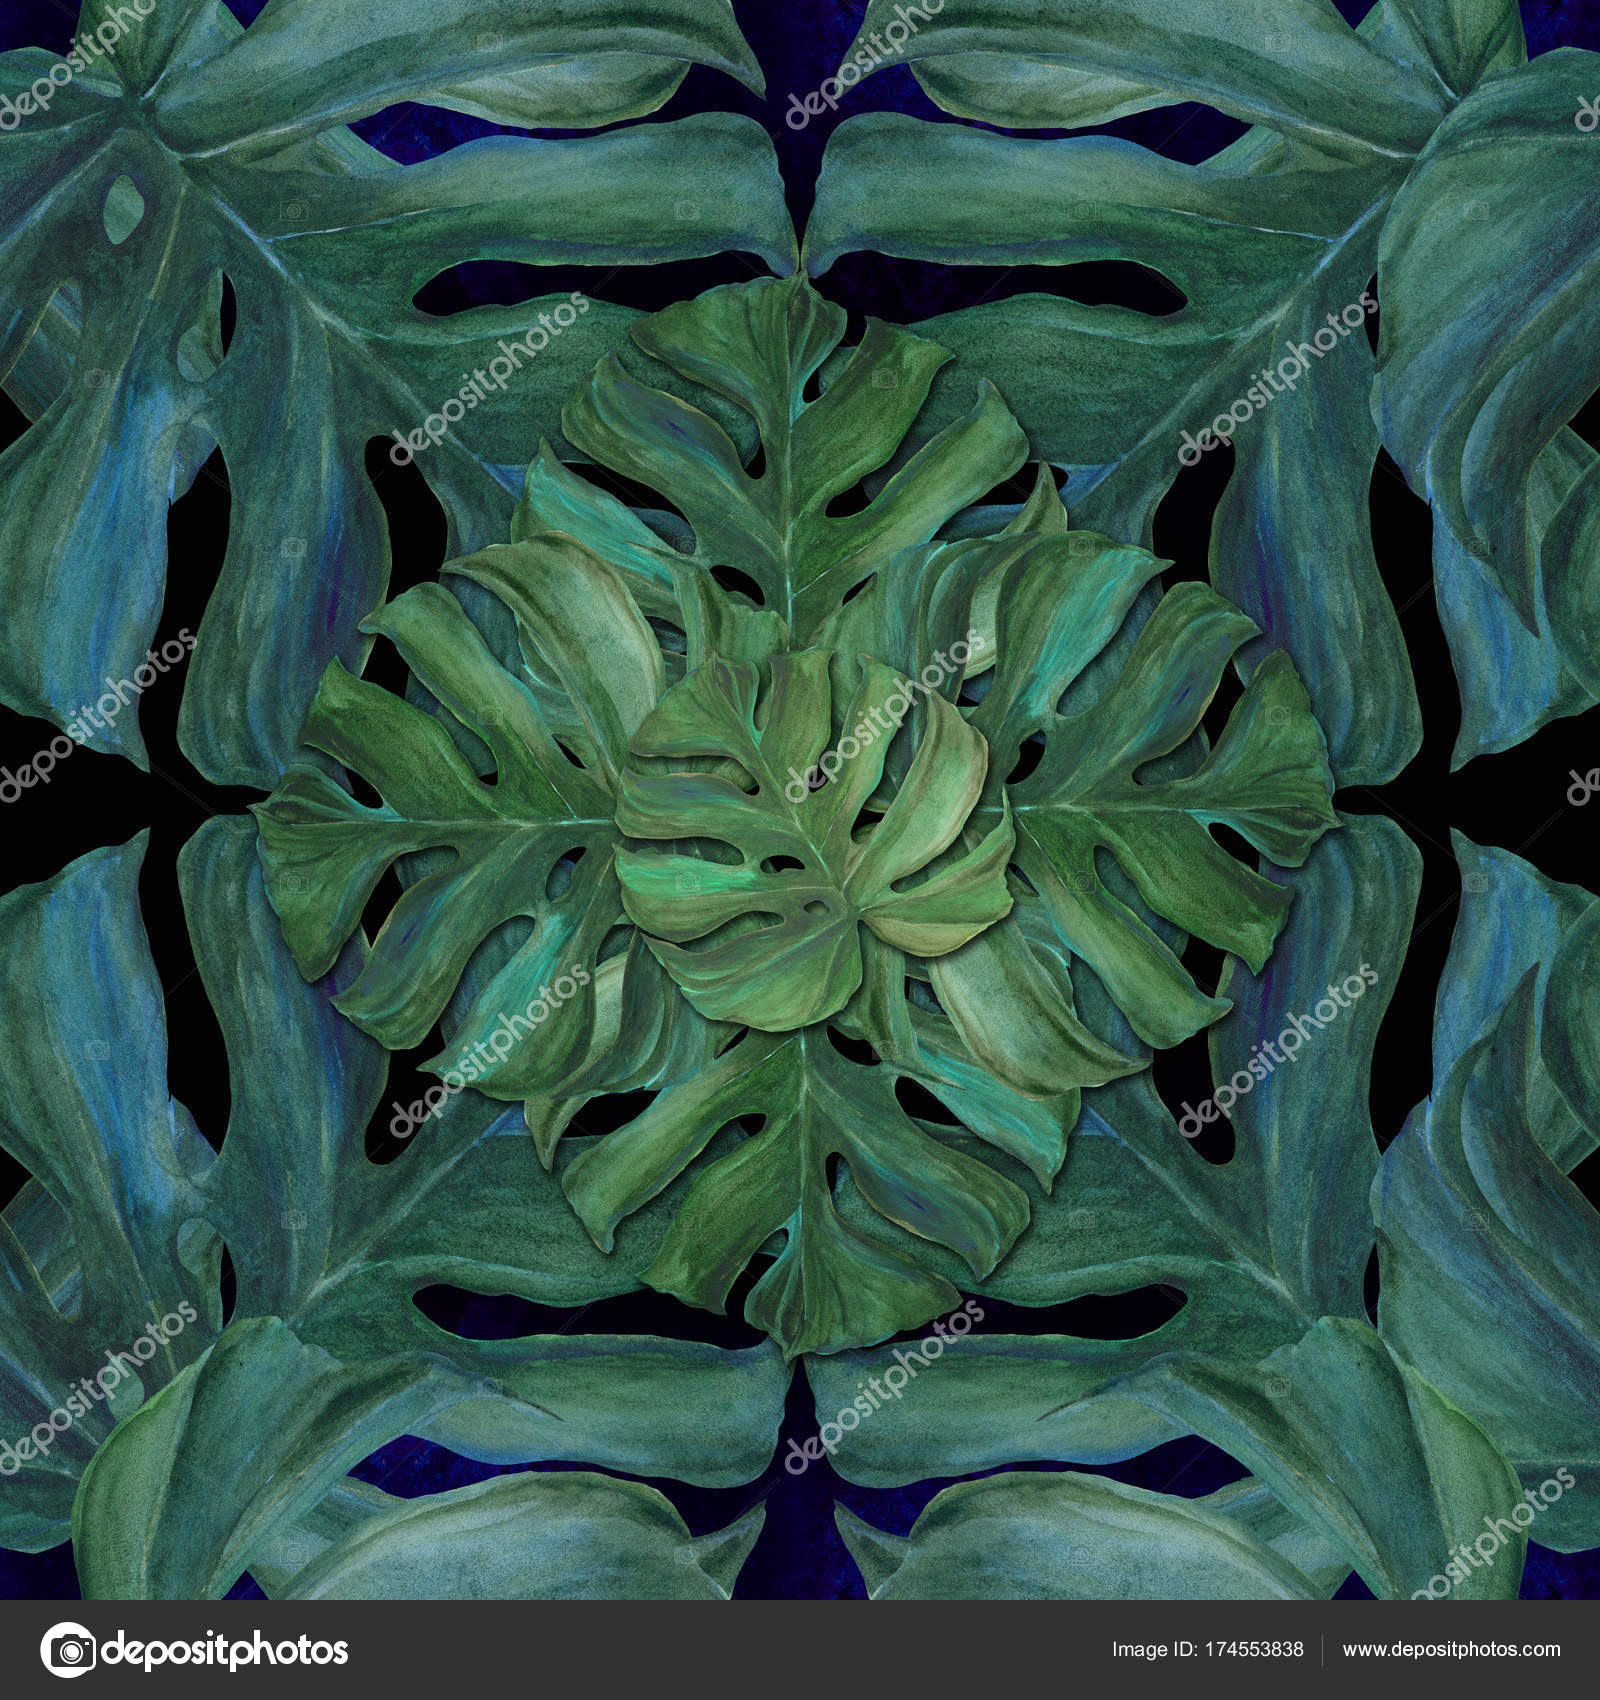 Large Leaves Of Tropical Plants Decorative Composition On A